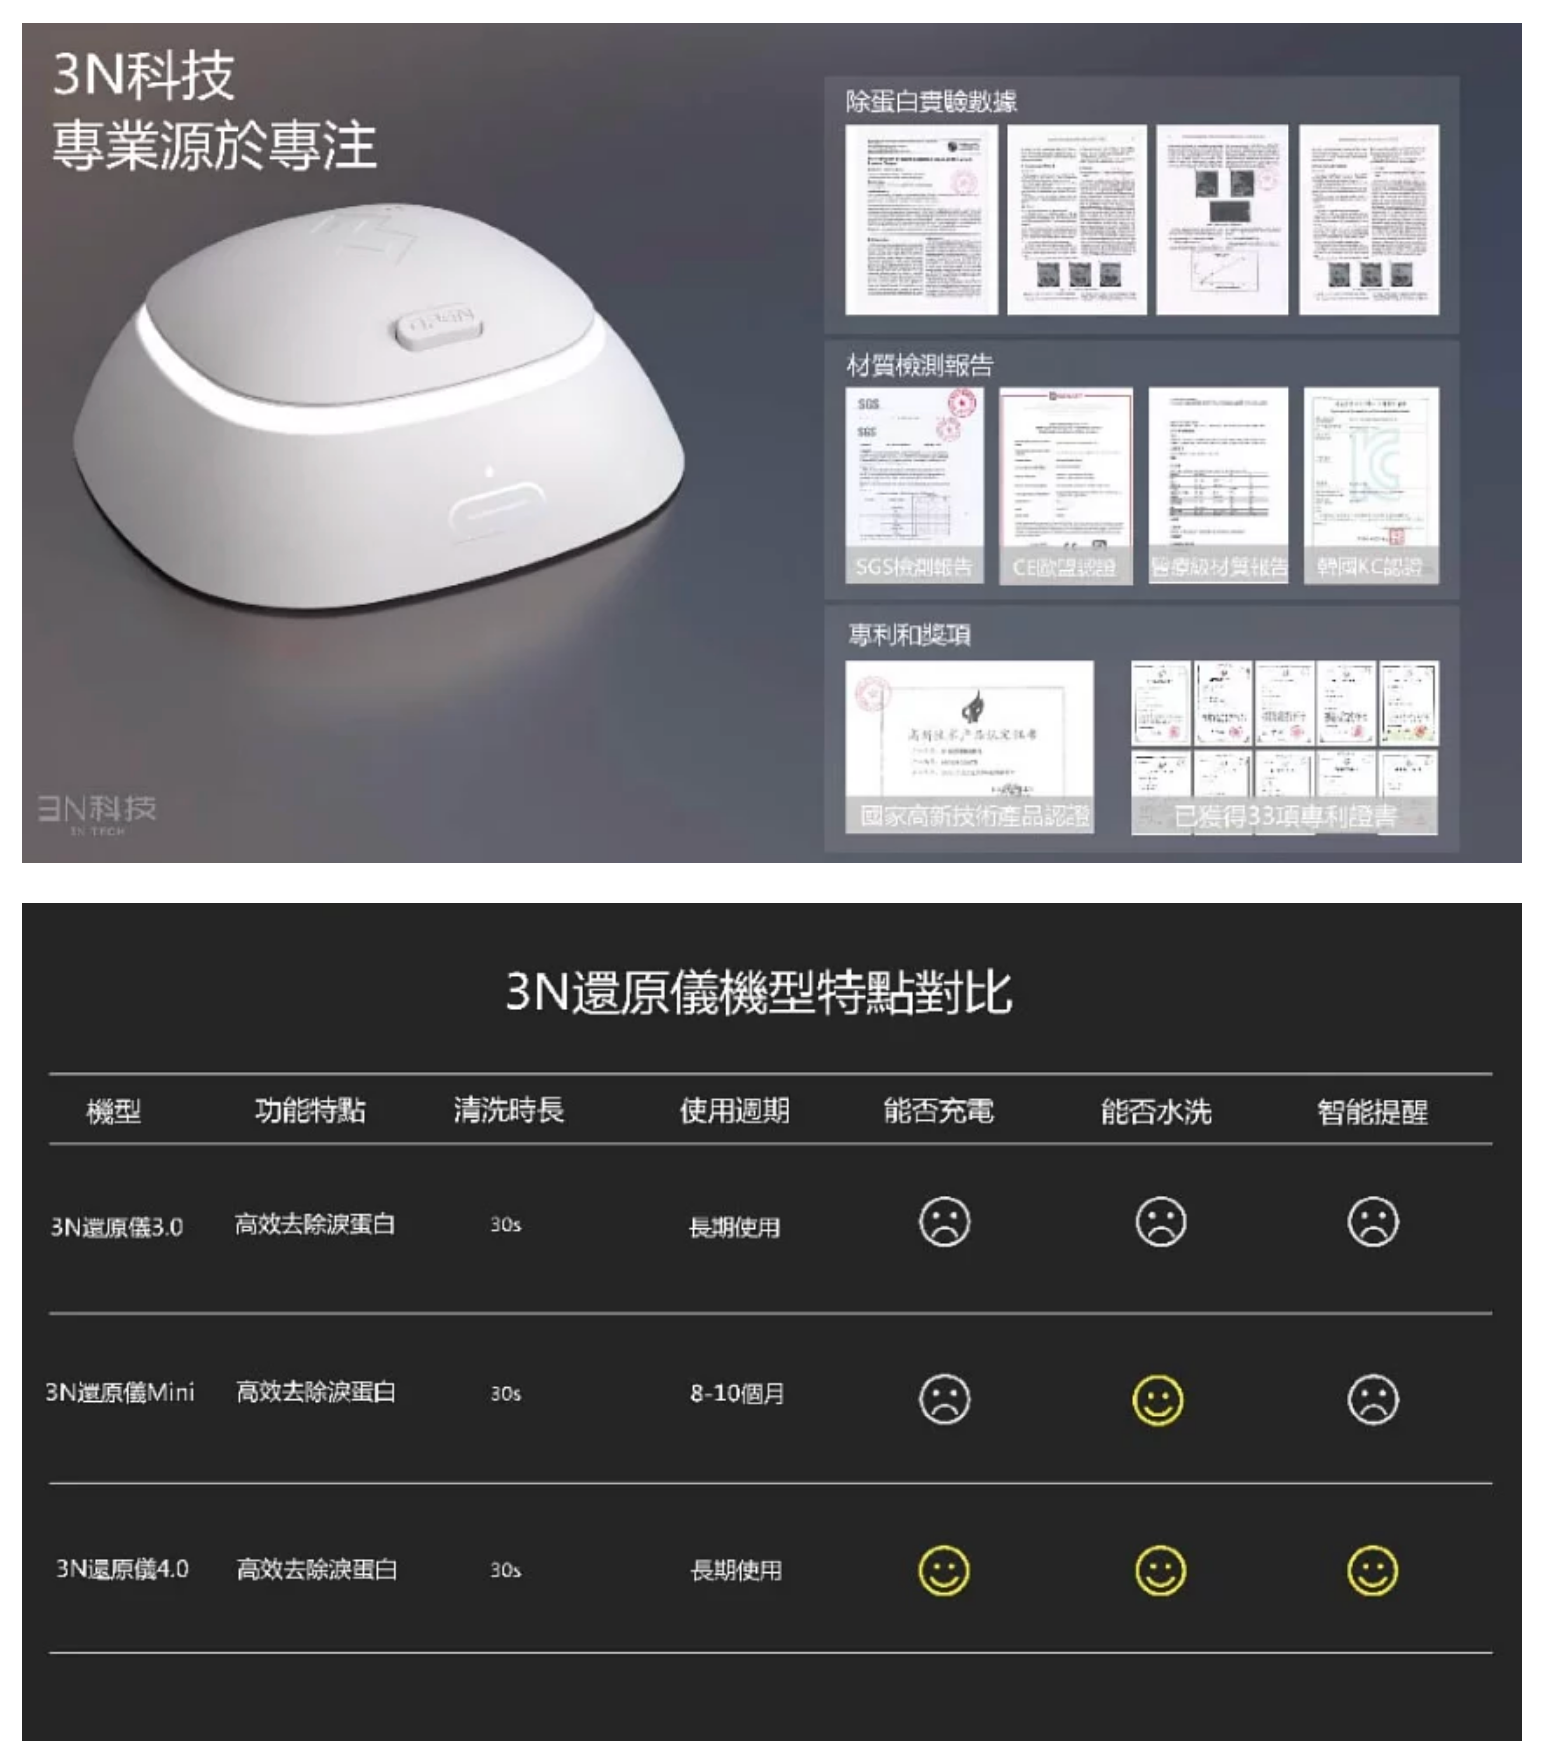 Contact lens Cleaning instrument 最強隱形眼鏡清洗儀4.0 | 3N